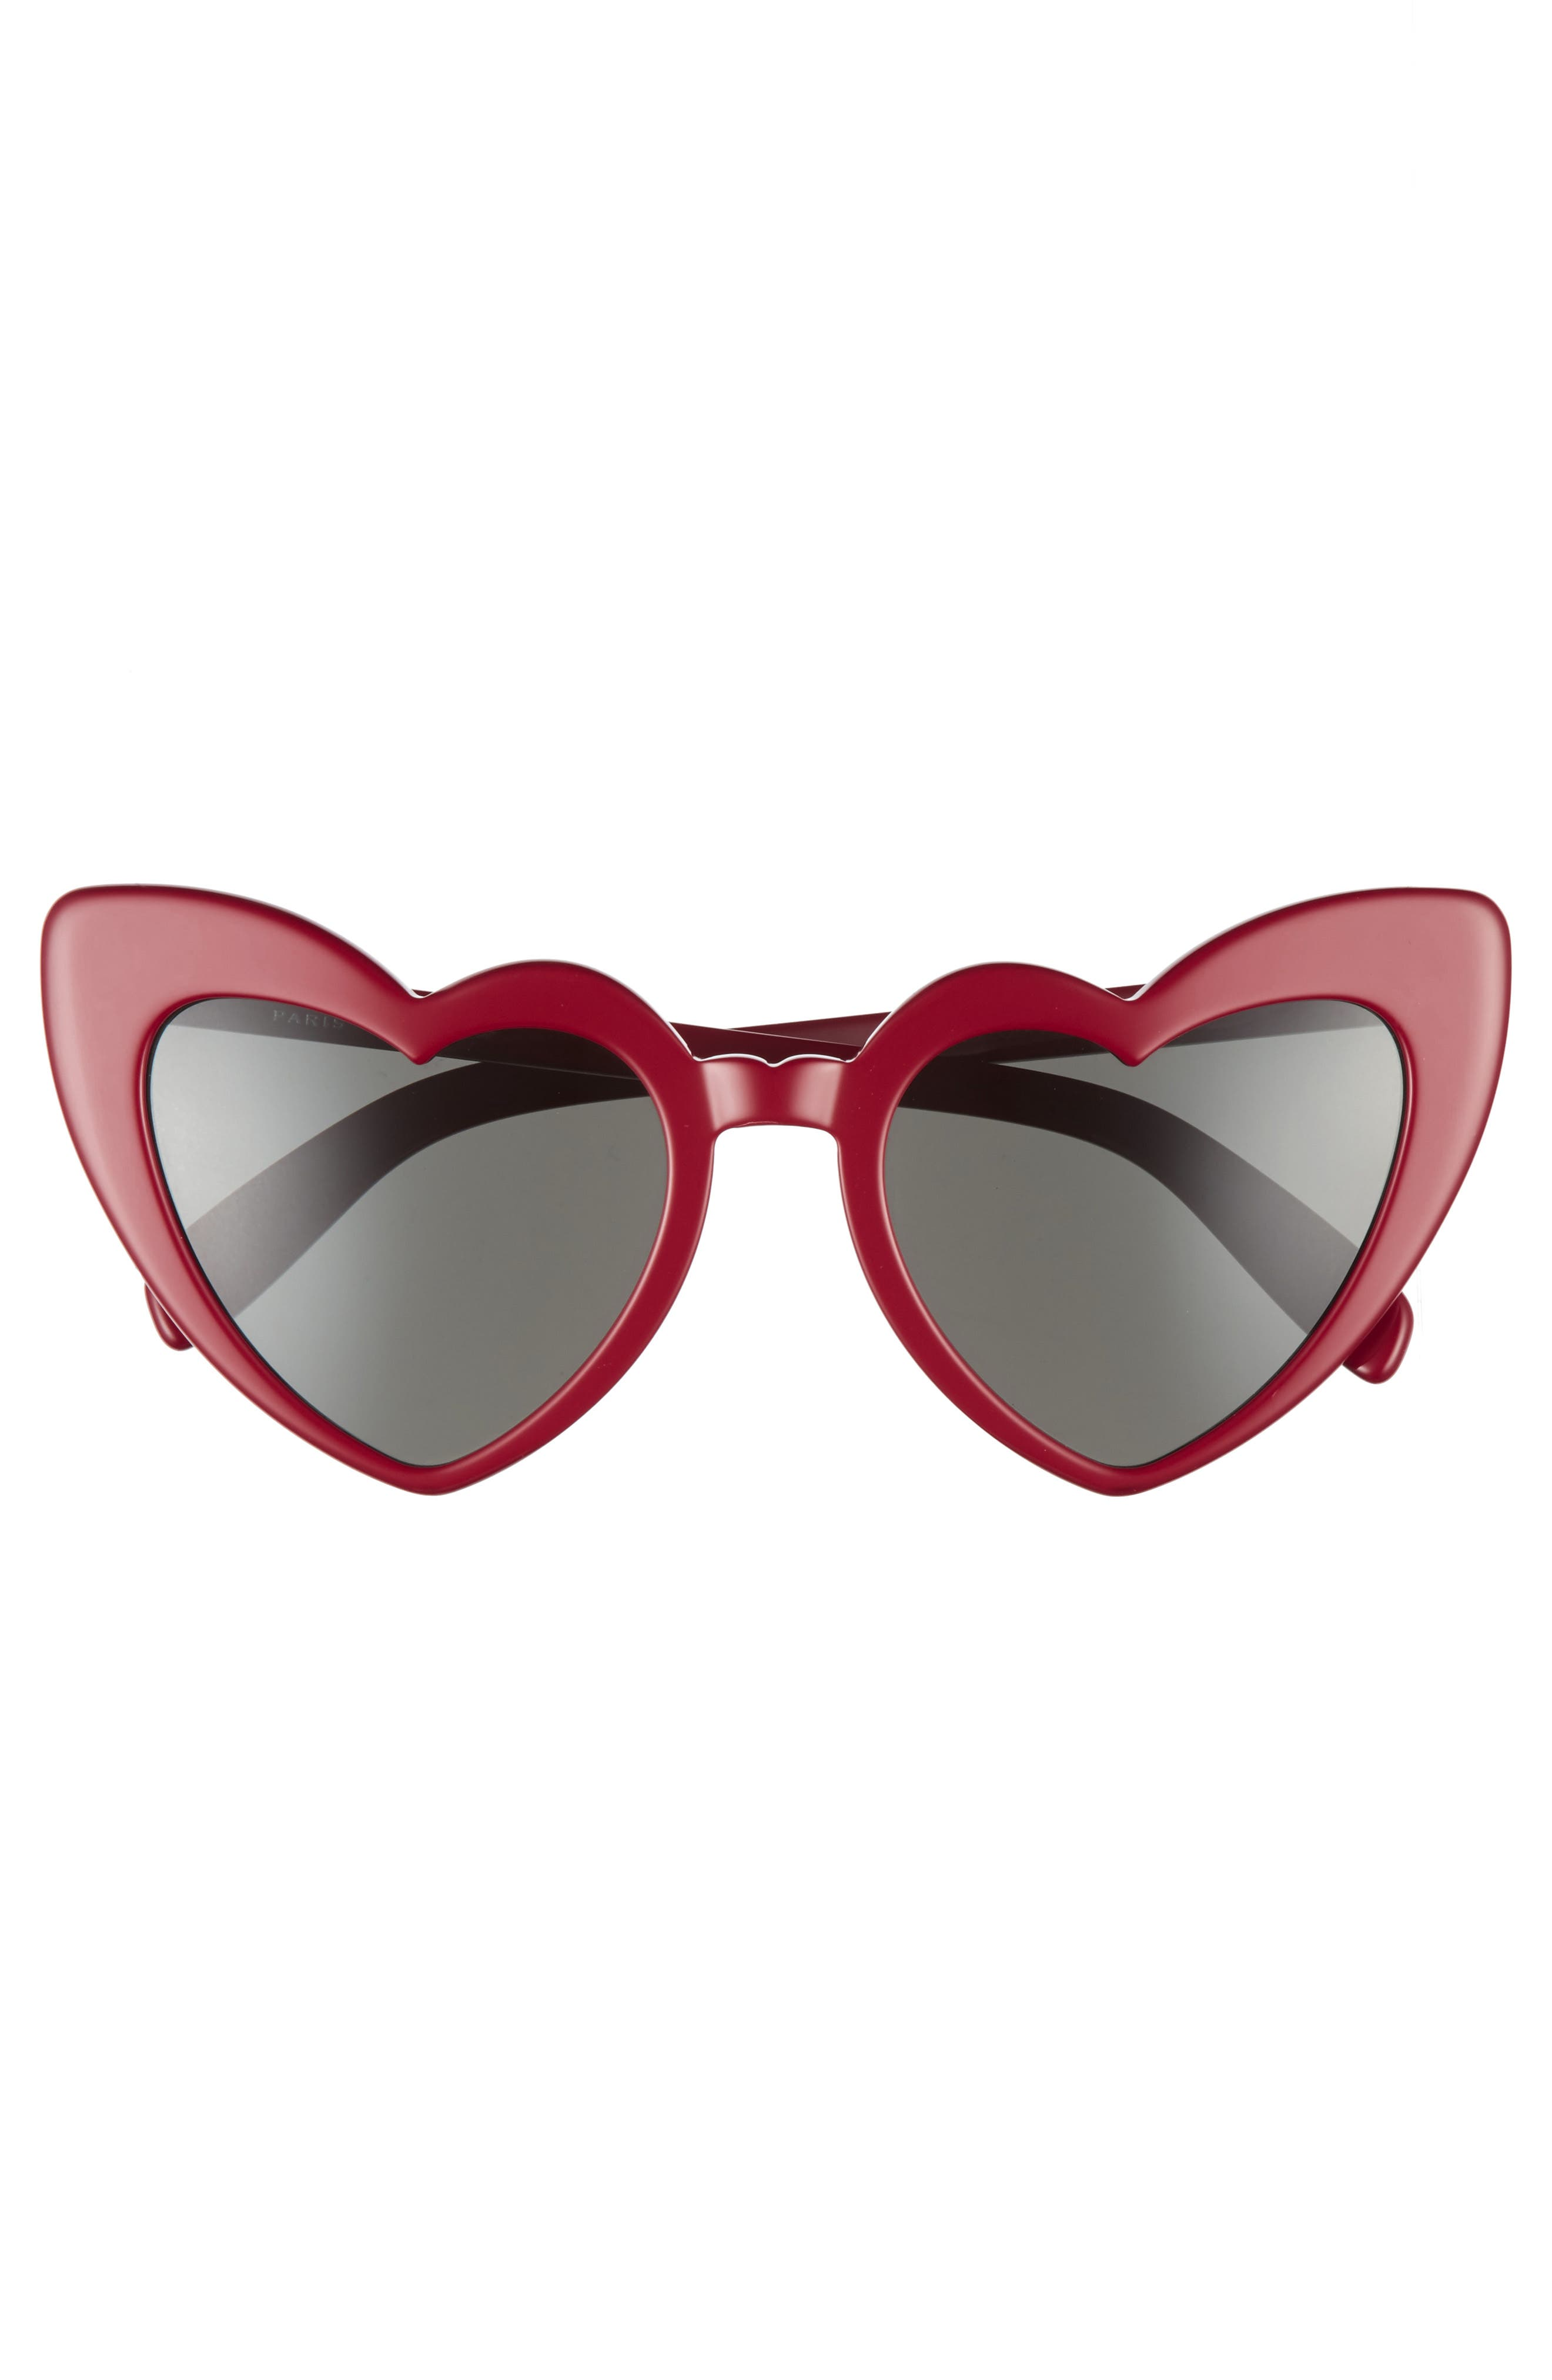 Loulou 54mm Heart Sunglasses,                             Alternate thumbnail 3, color,                             RED/ GREY